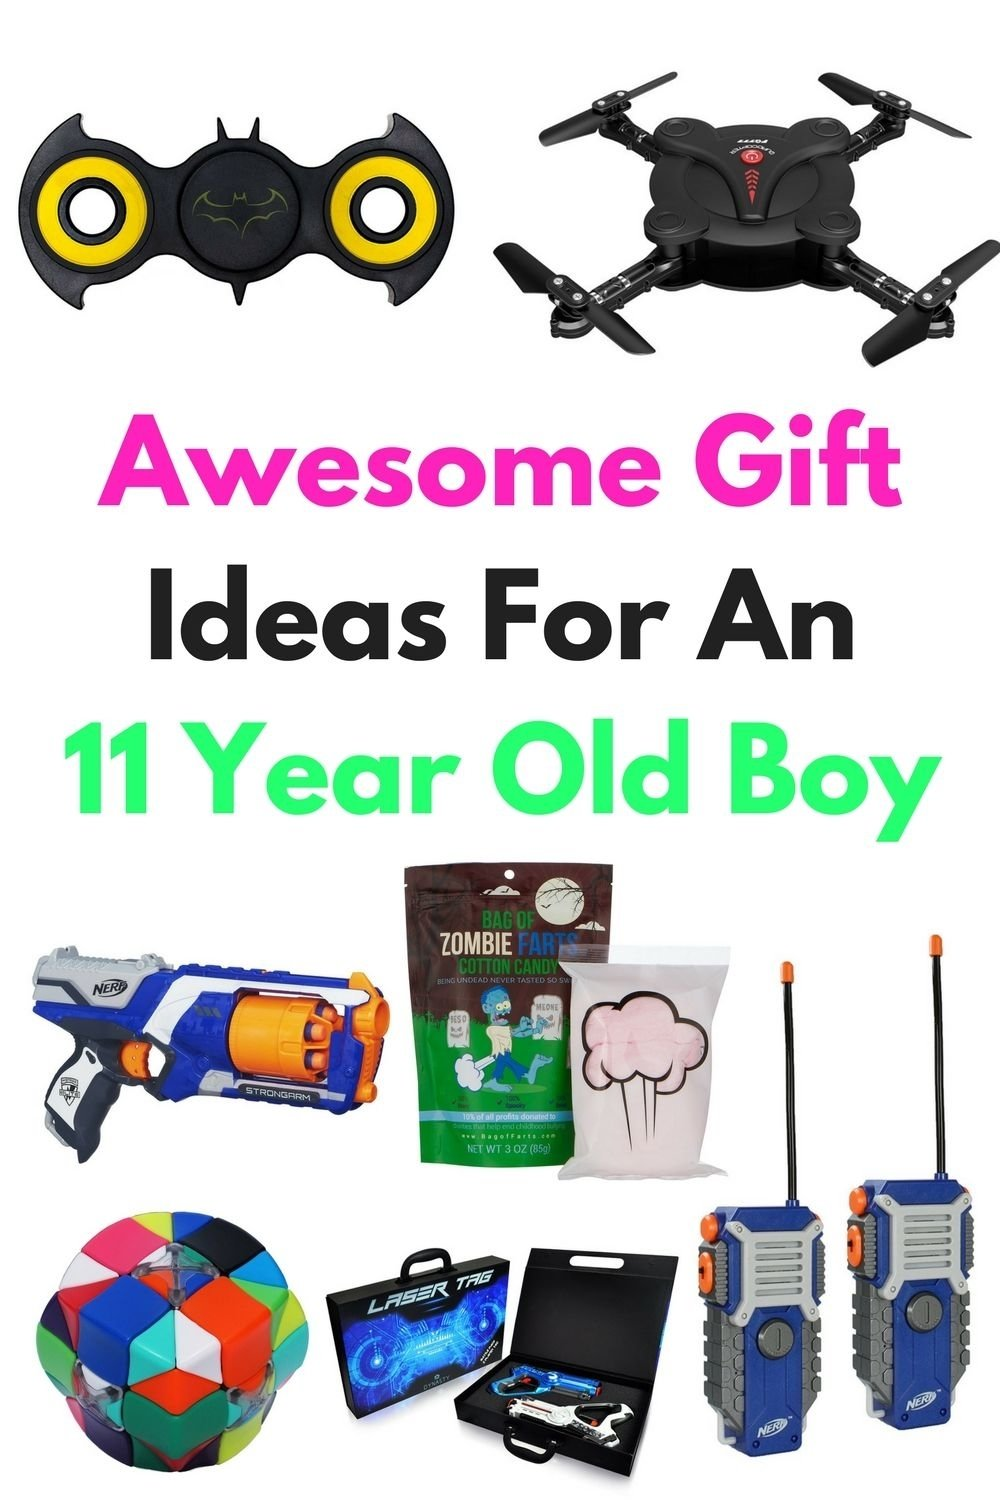 10 Beautiful 12 Year Old Boy Birthday Gift Ideas Awesome For An 11